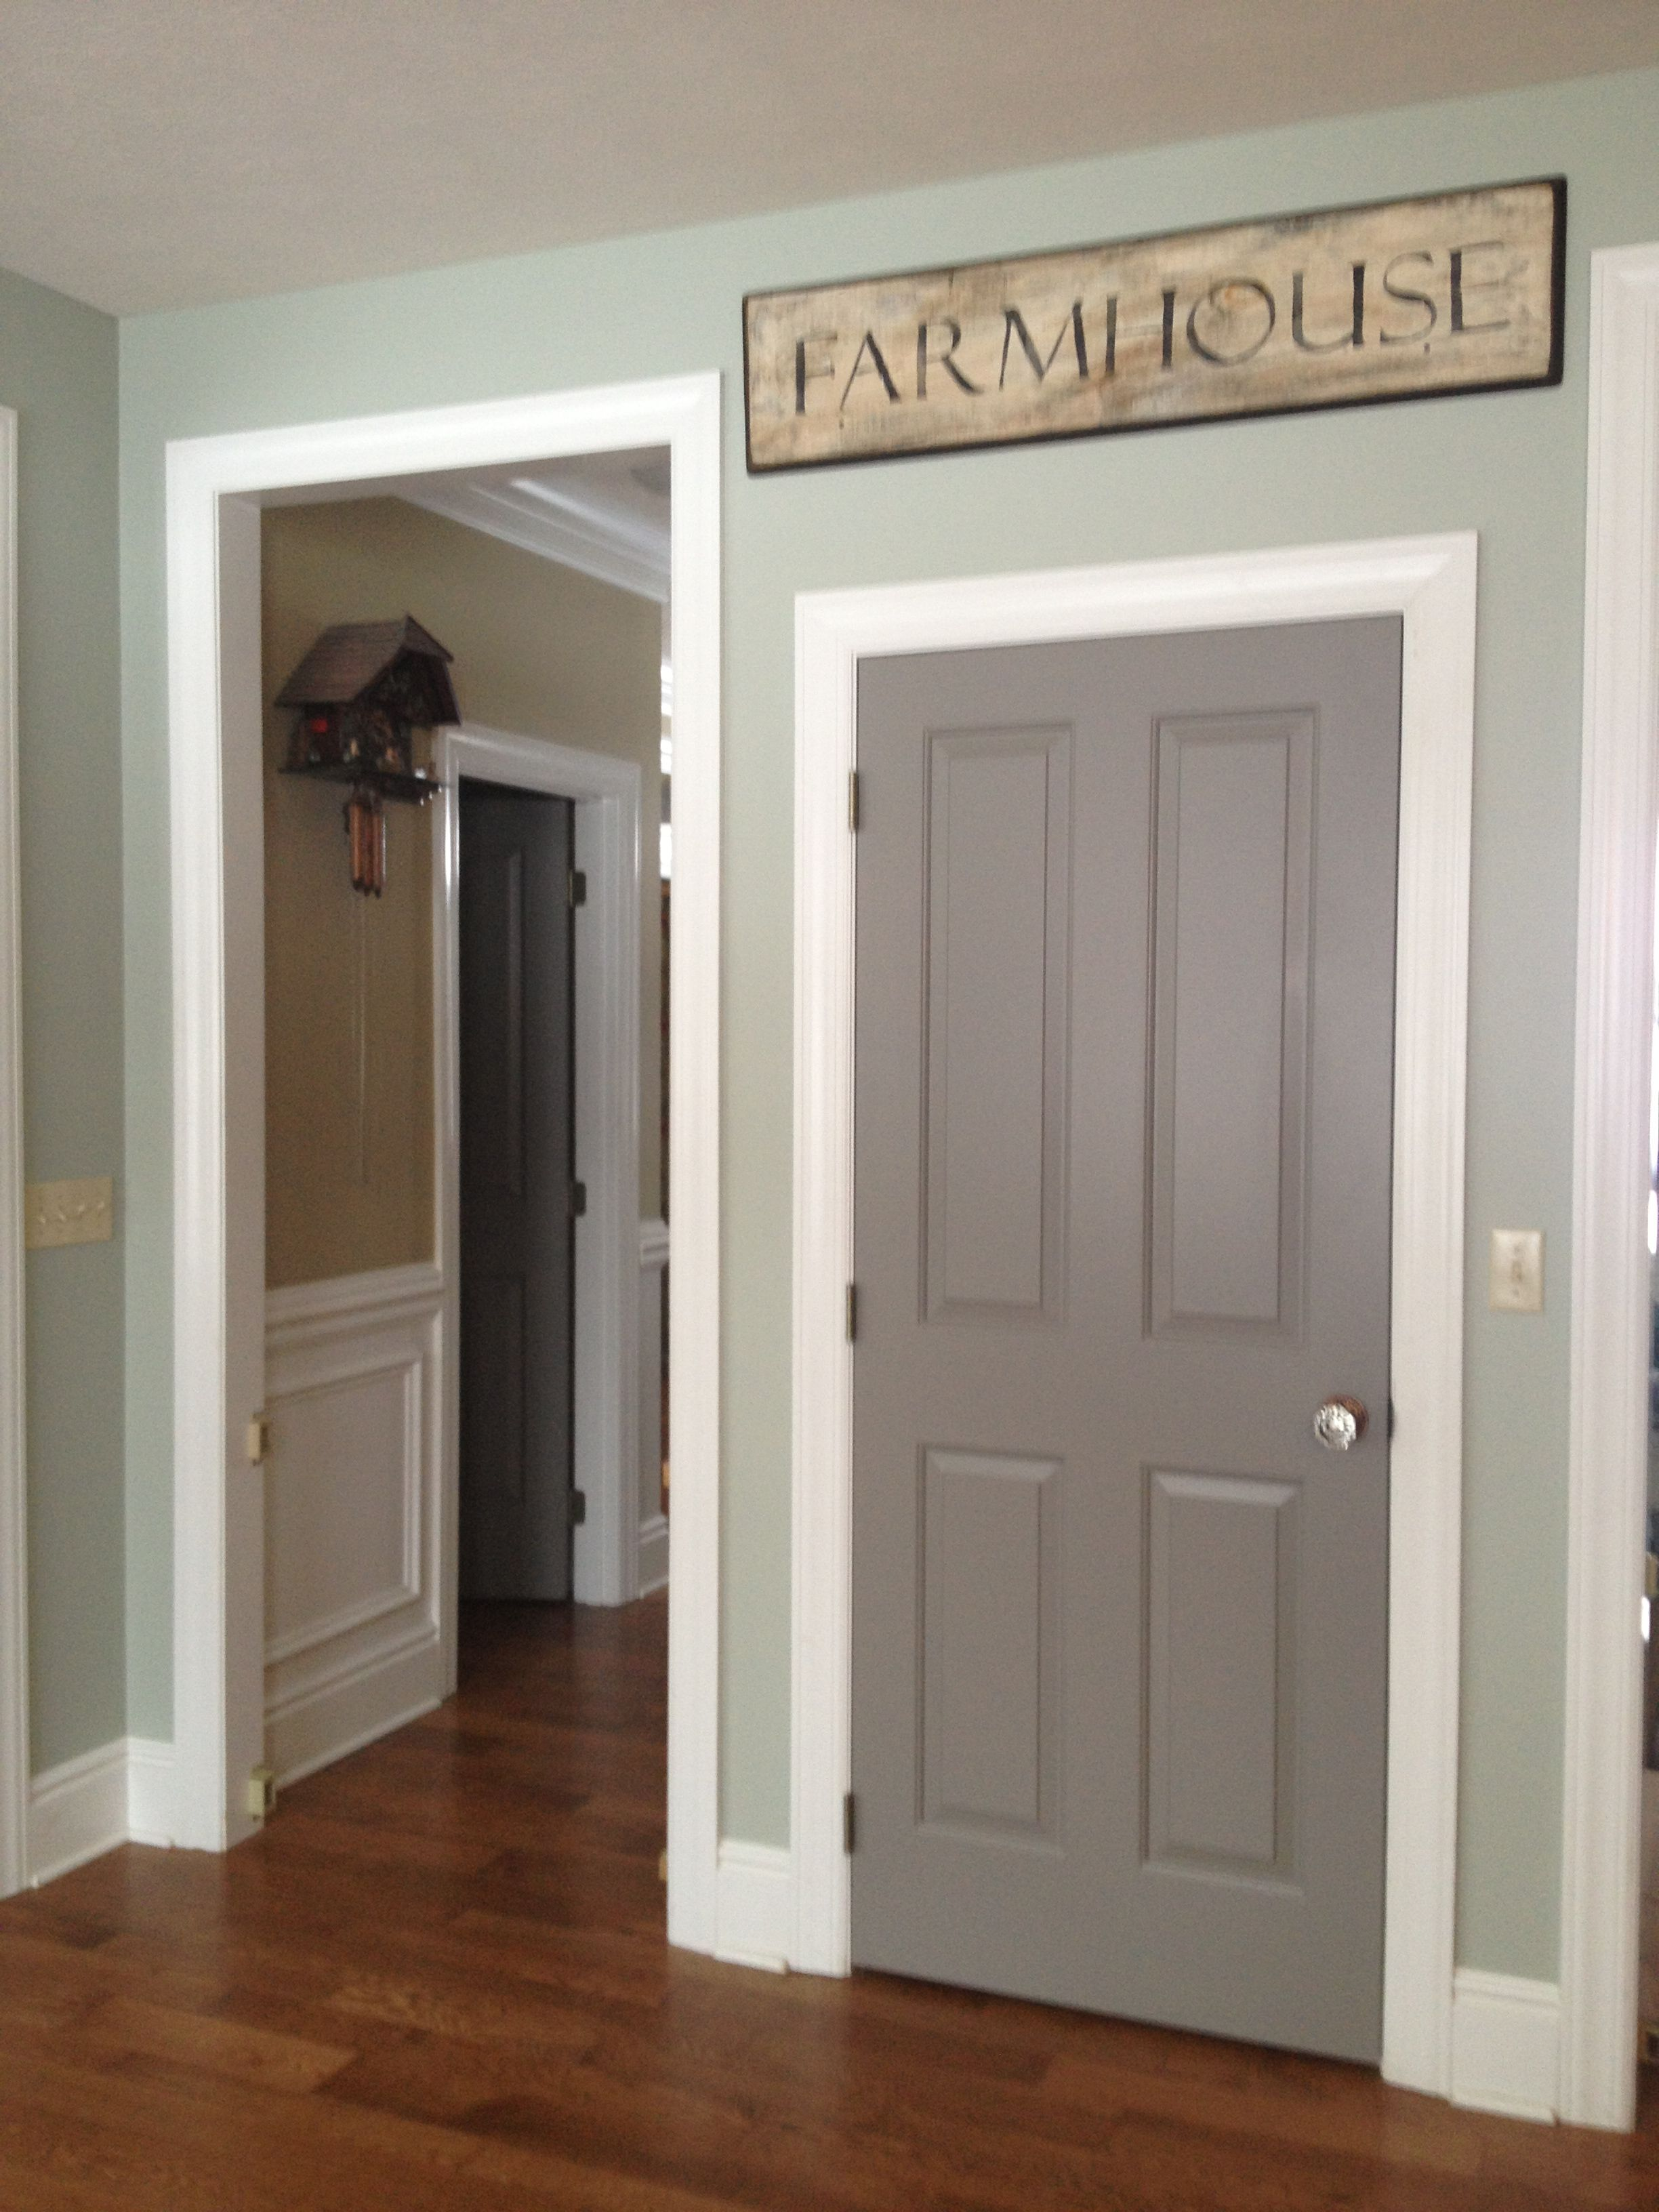 Sherwin williams dovetail grey the door color is what i for Sherwin and williams paint